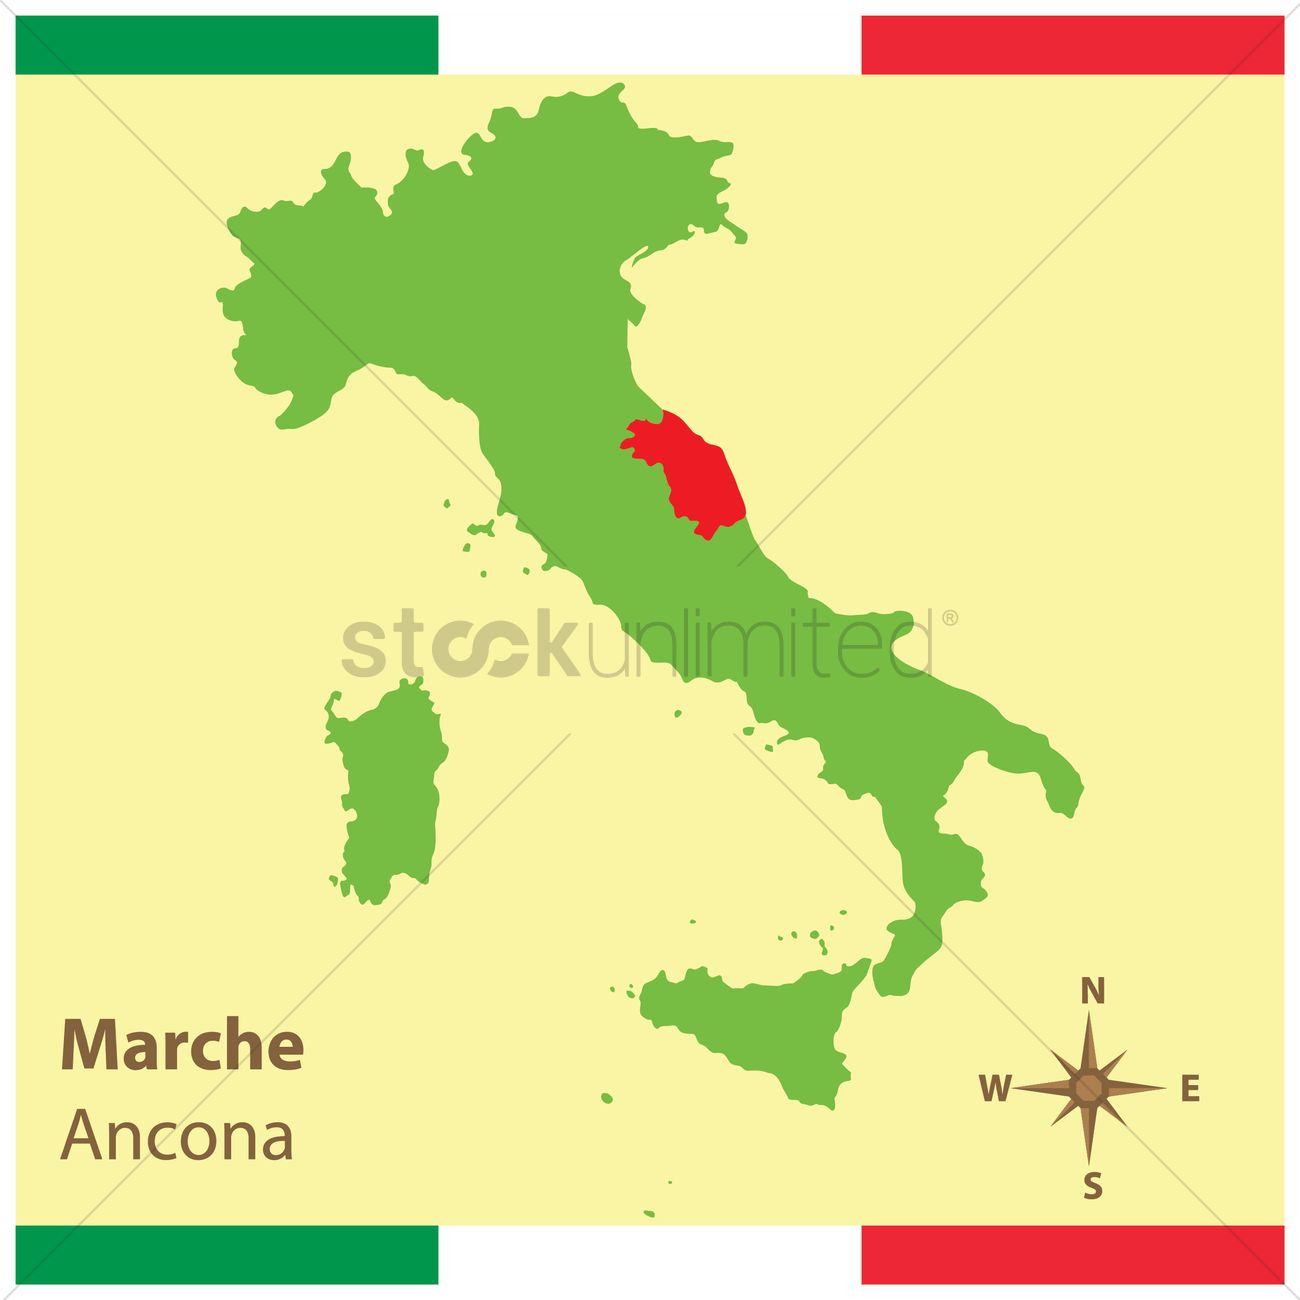 Marche On Italy Map Vector Image 1583944 Stockunlimited